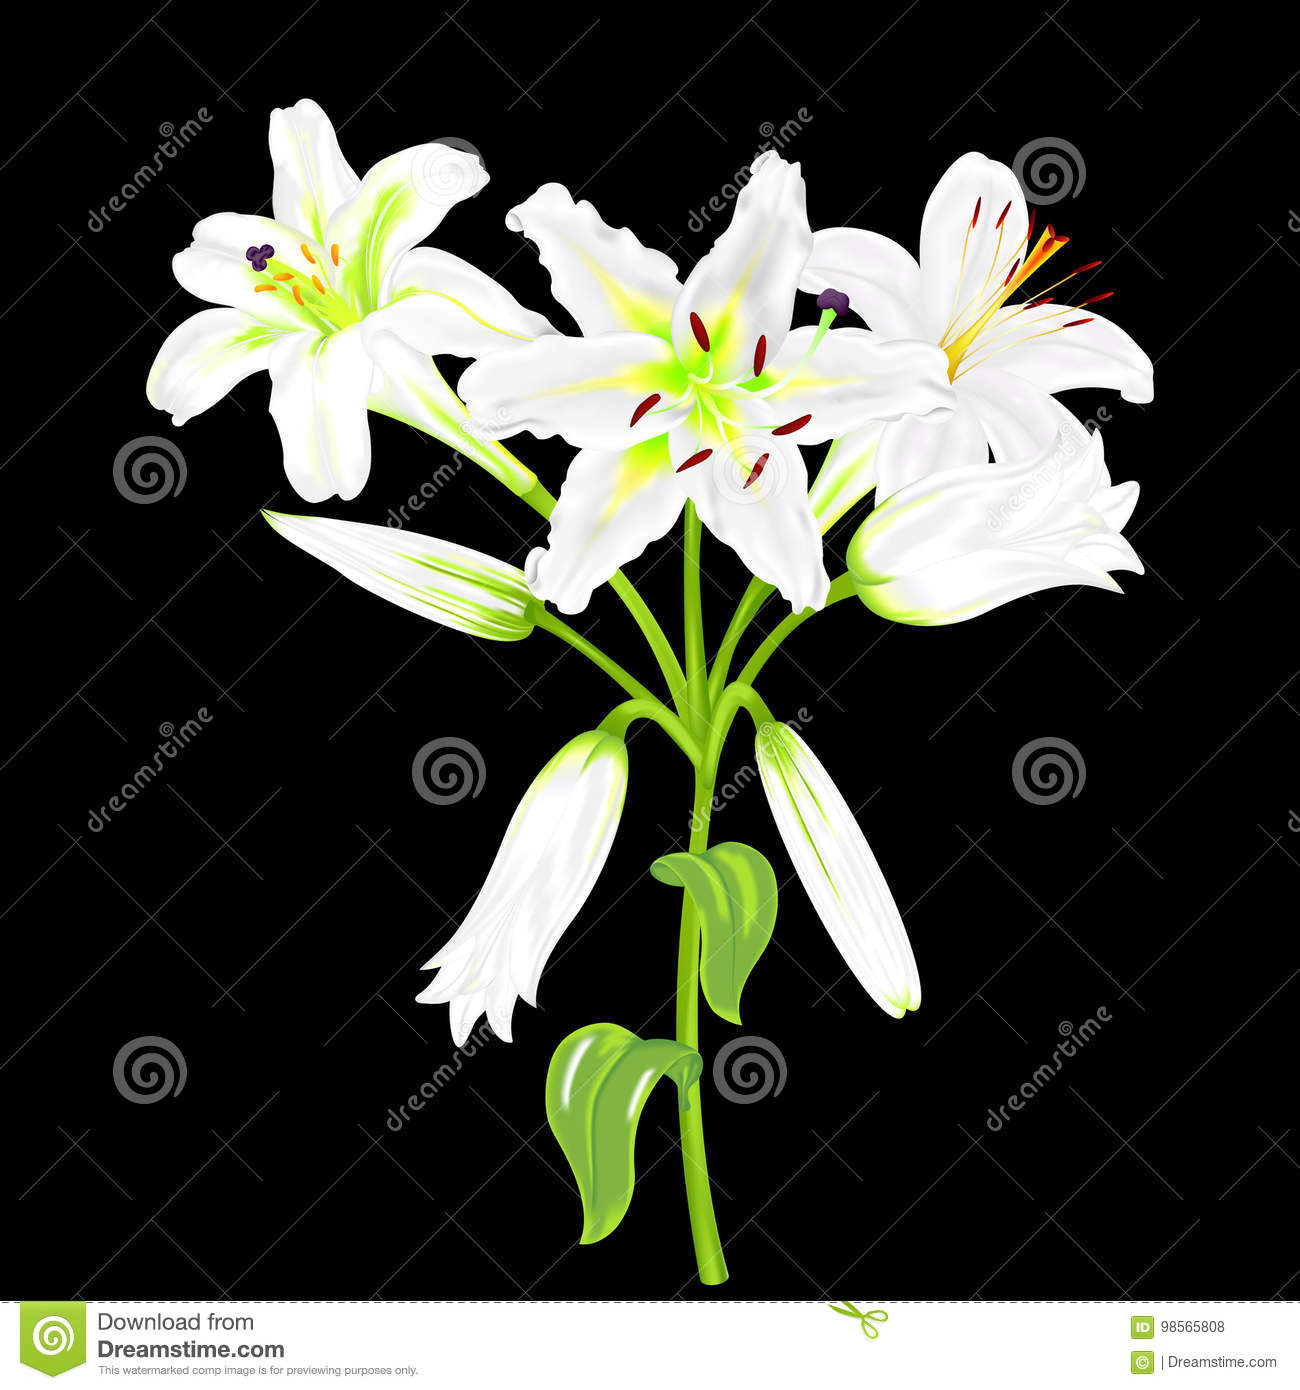 Flowers Of White Lilies On A Black Background Stock Vector